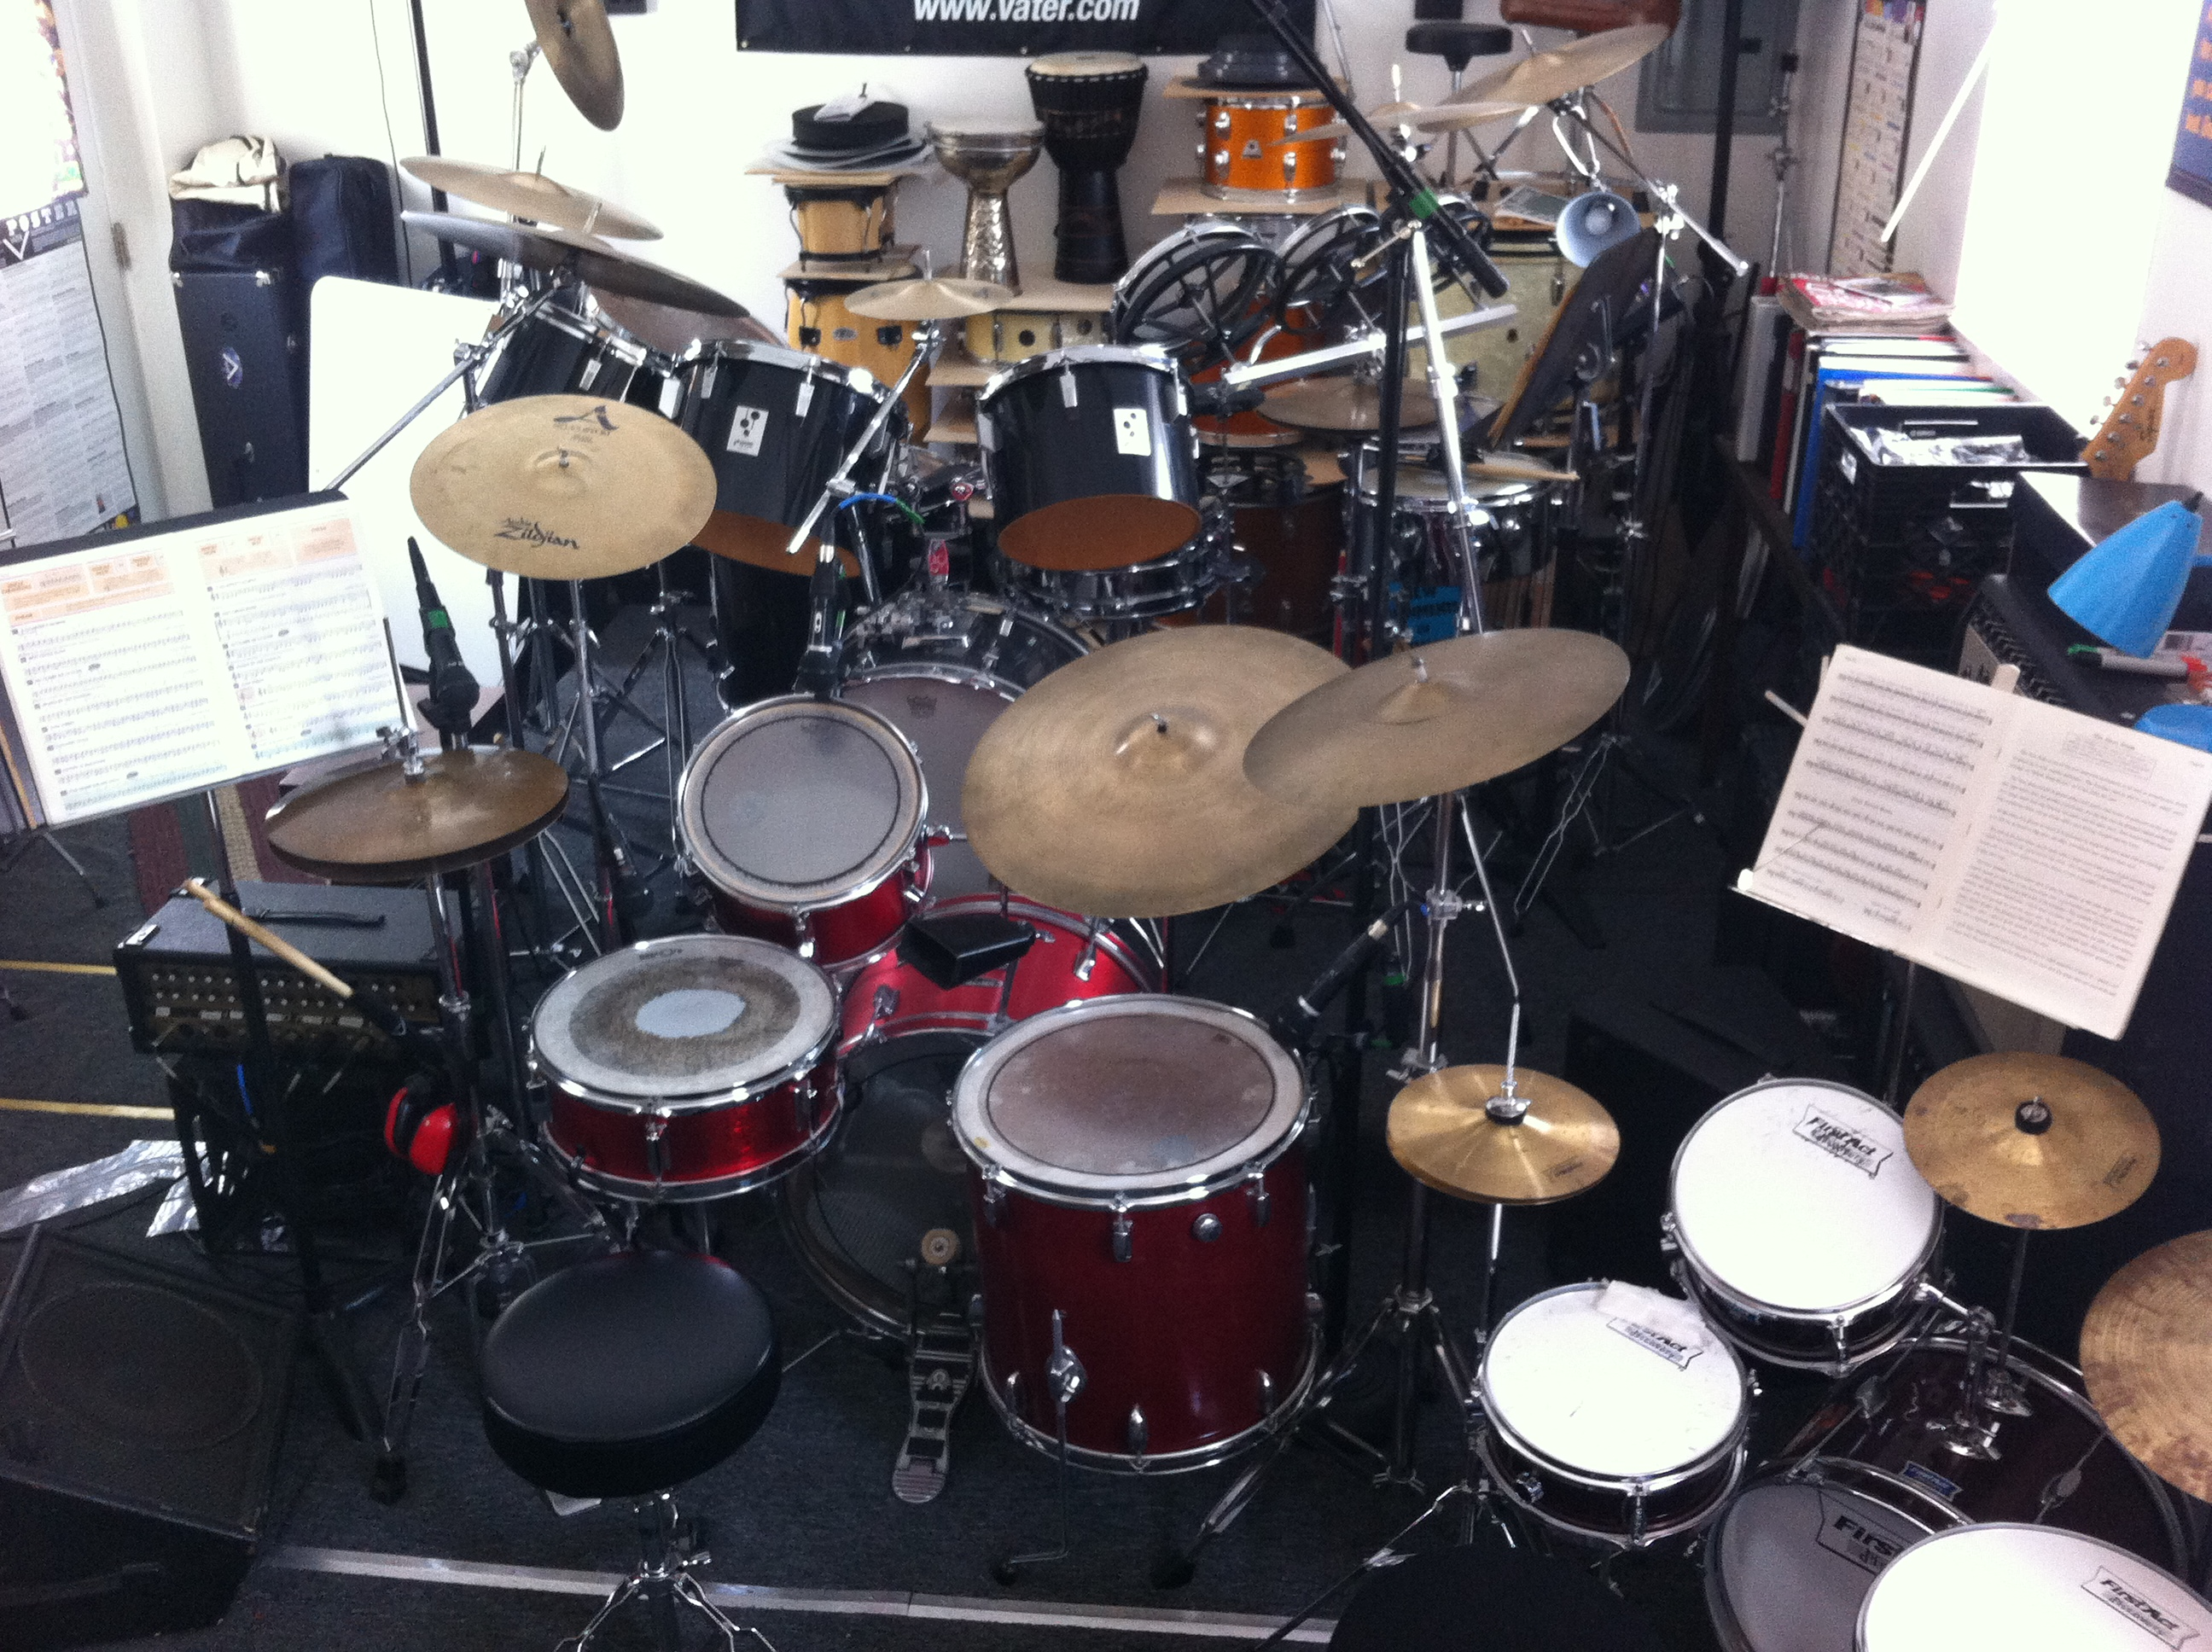 JD Drum School: Drum lessons by Jeremy JD Sheehan for